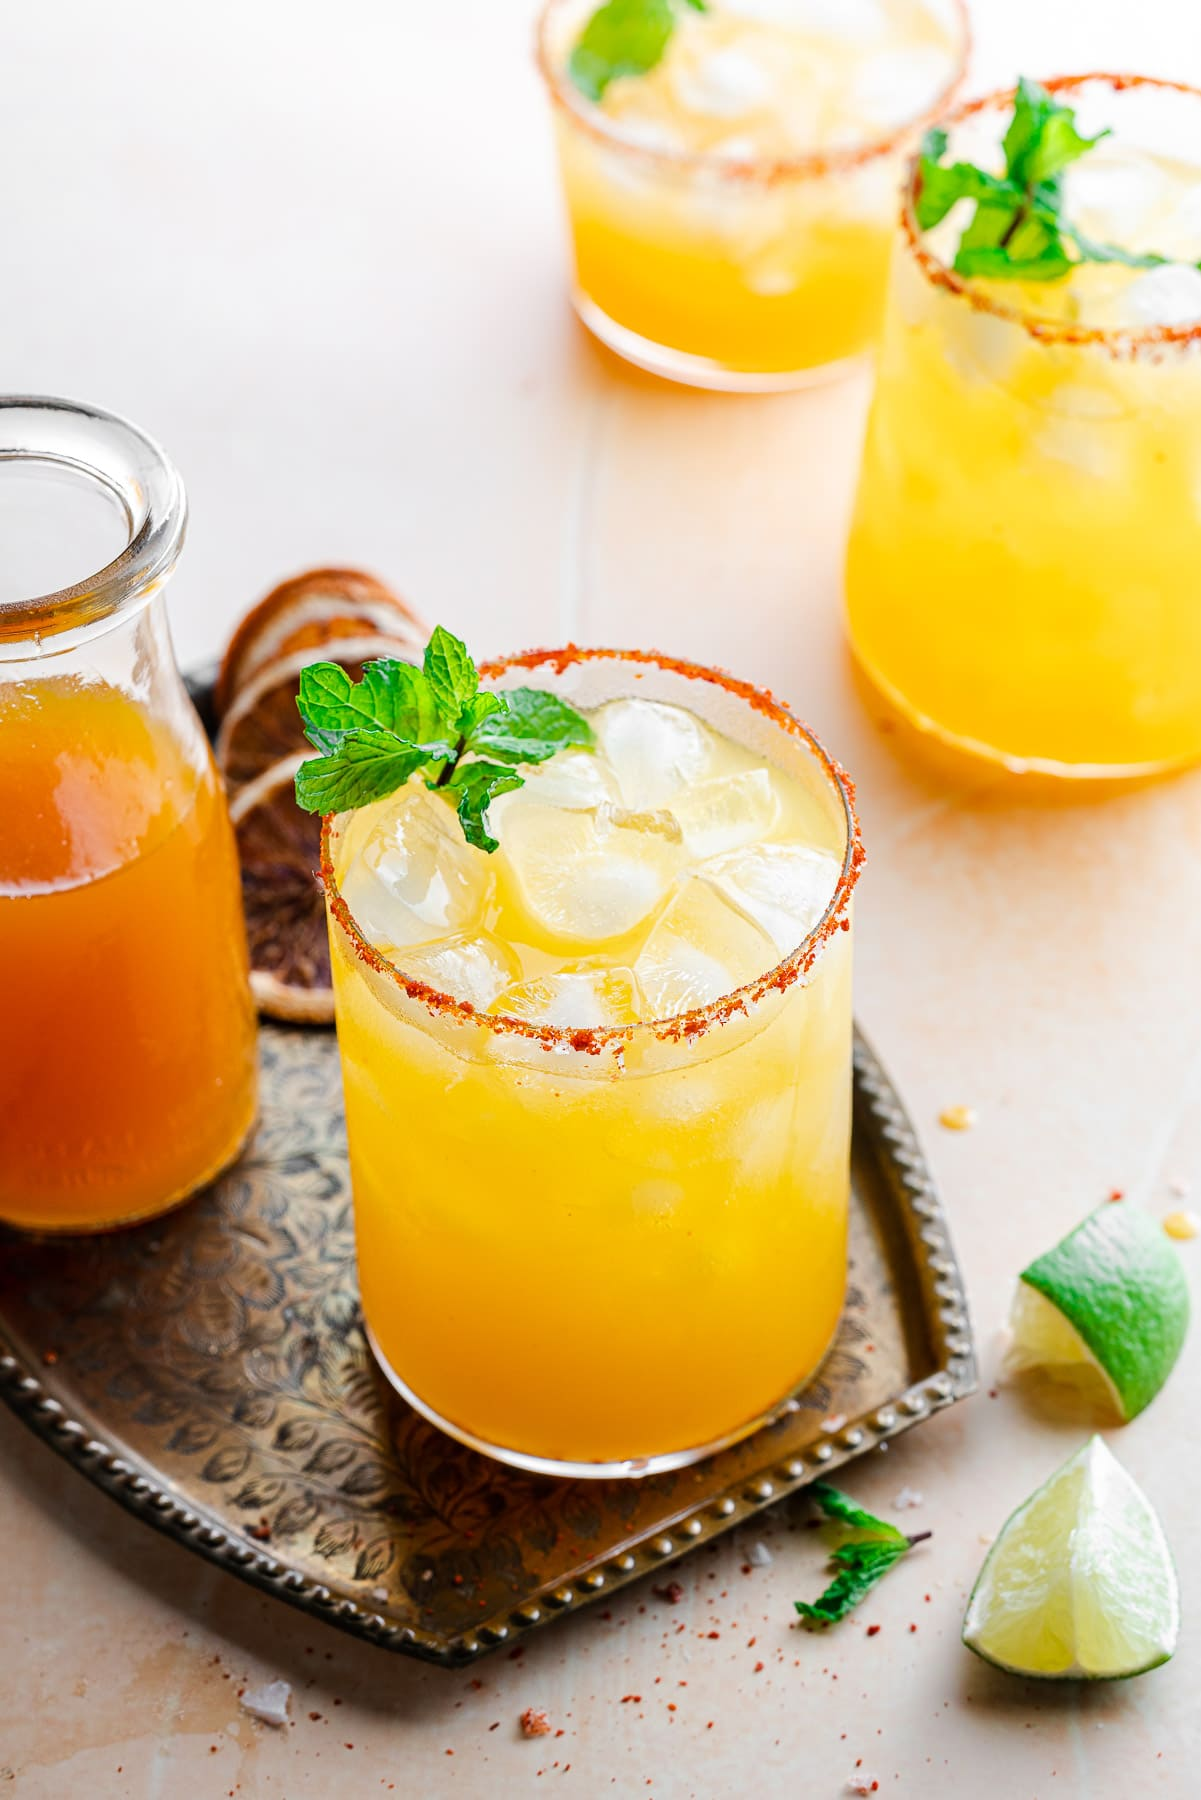 three passionfruit margaritas, one on a tray with passionfruit syrup and dehydrated blood oranges with mint leaves and lime wedges